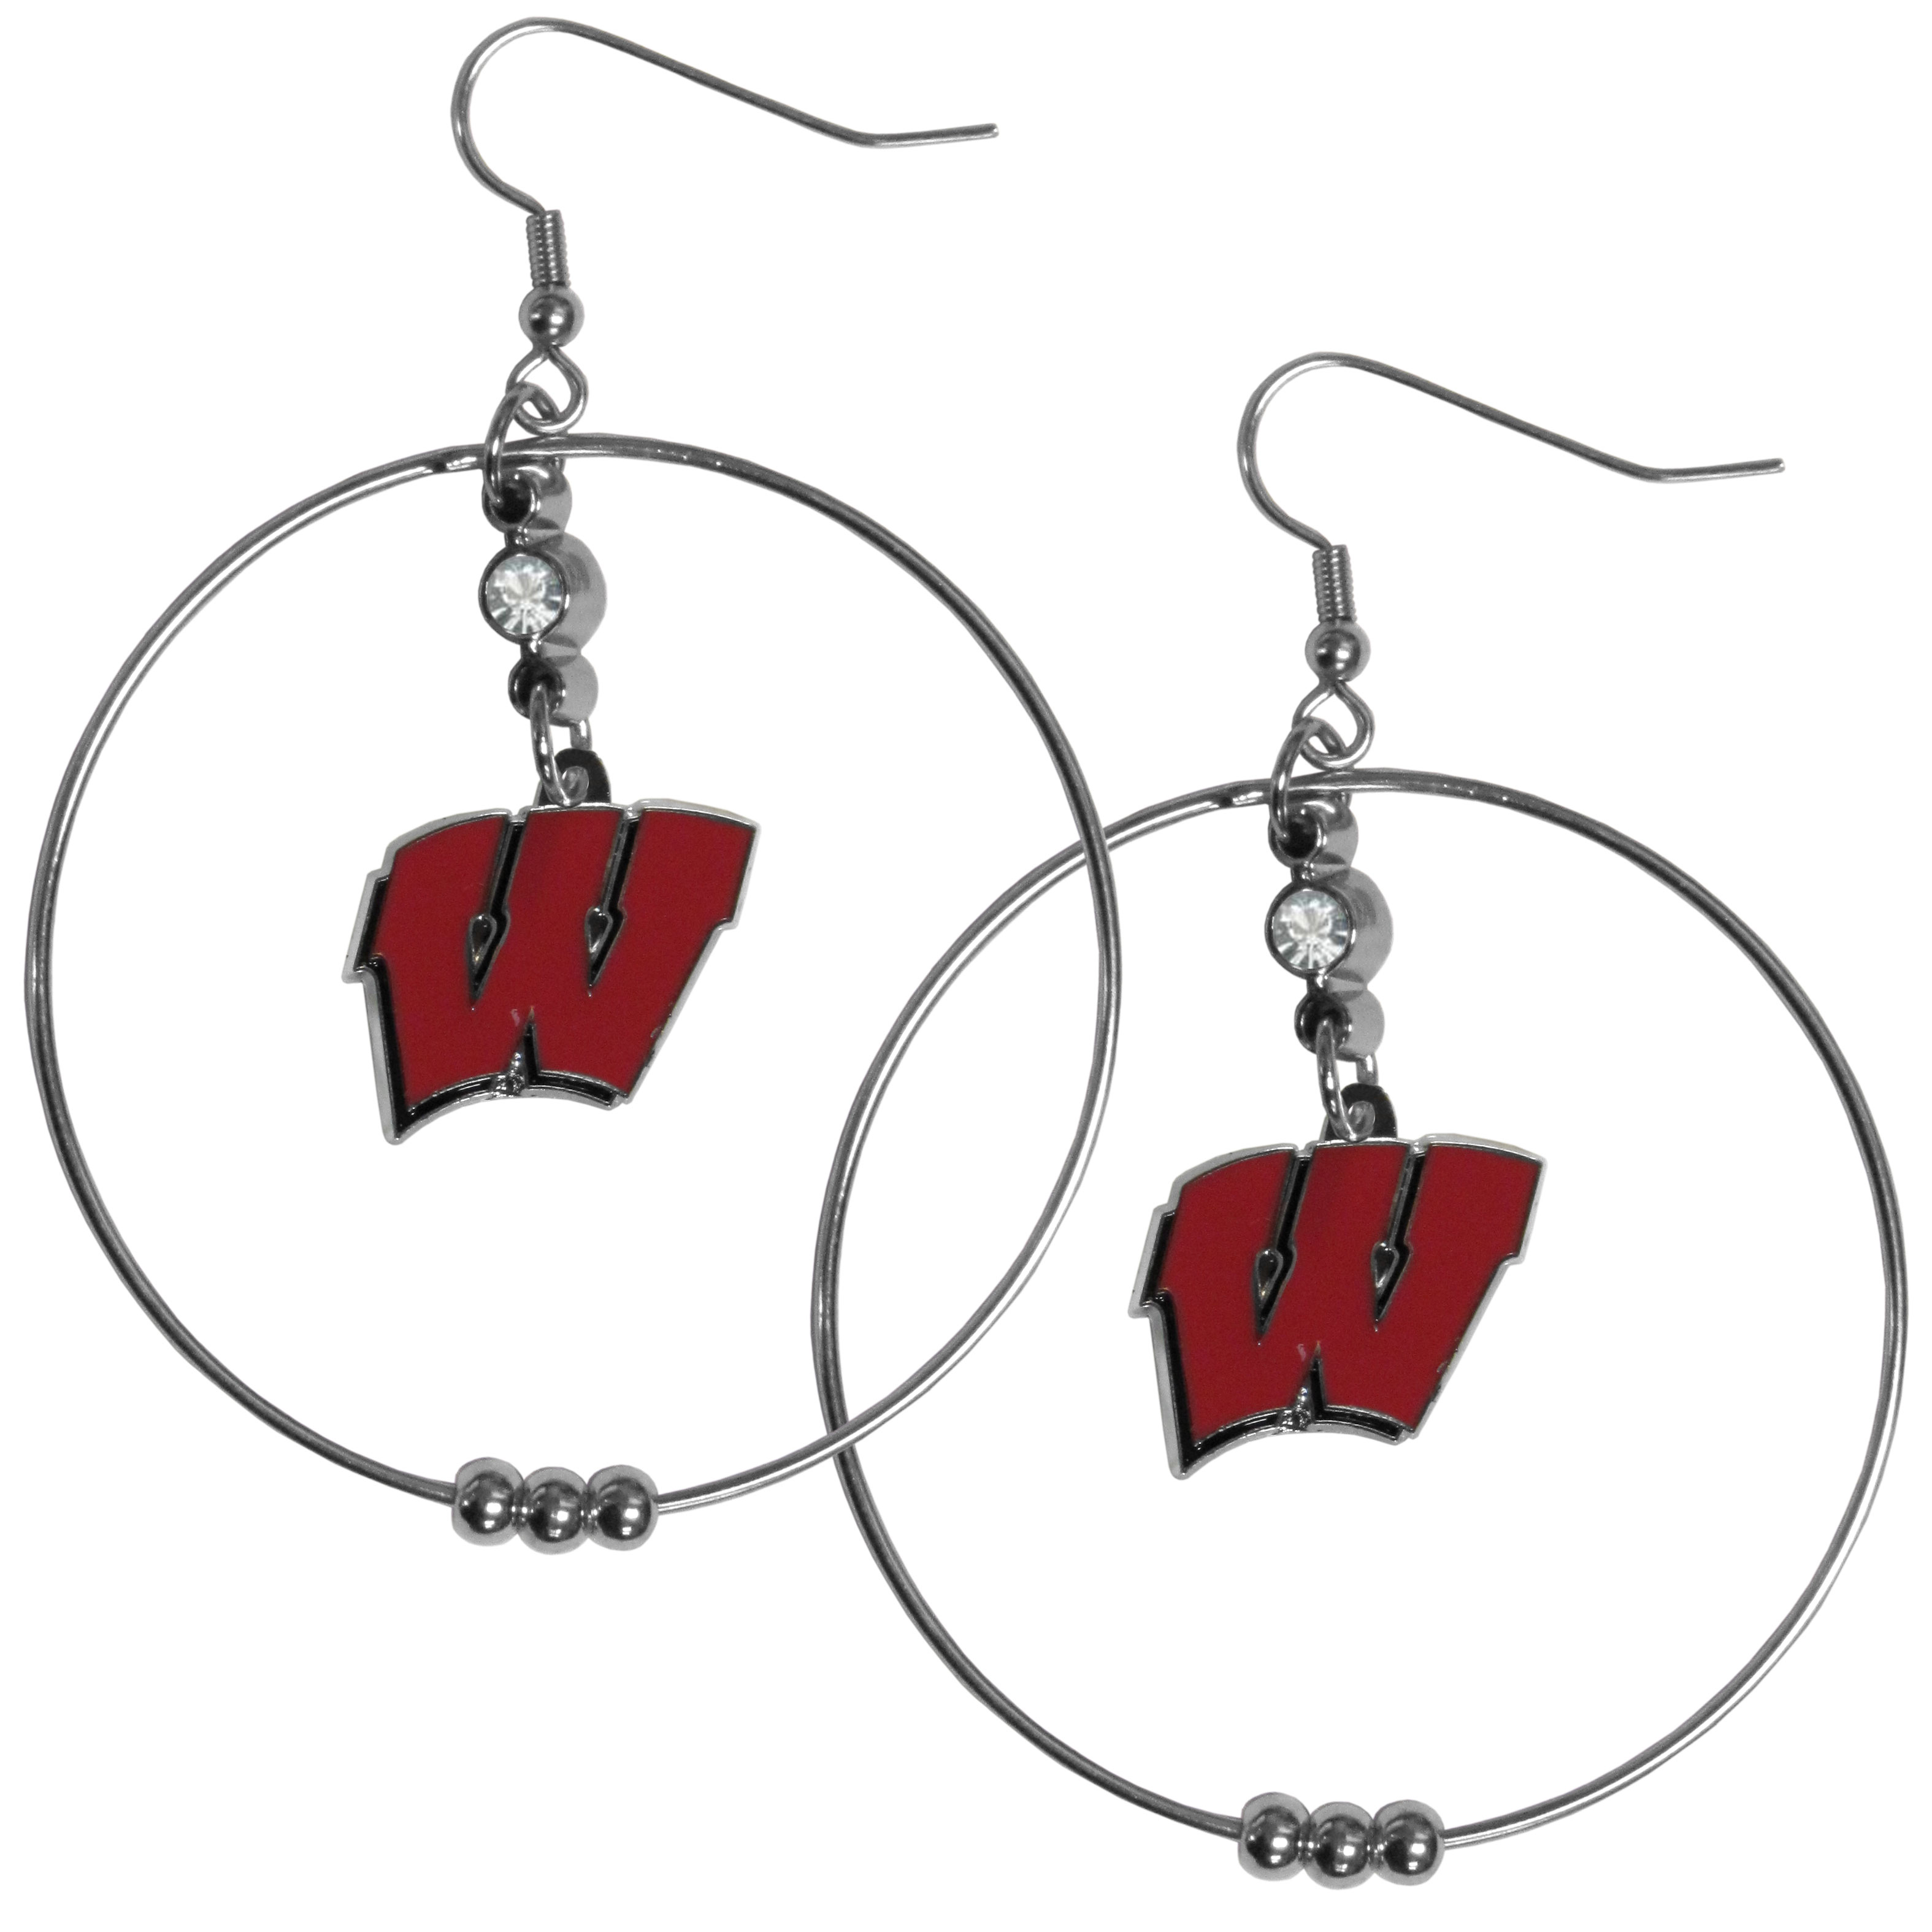 Wisconsin Badgers 2 Inch Hoop Earrings - Our large hoop earrings have a fully cast and enameled Wisconsin Badgers charm with enameled detail and a high polish nickel free chrome finish and rhinestone access. Hypoallergenic fishhook posts.